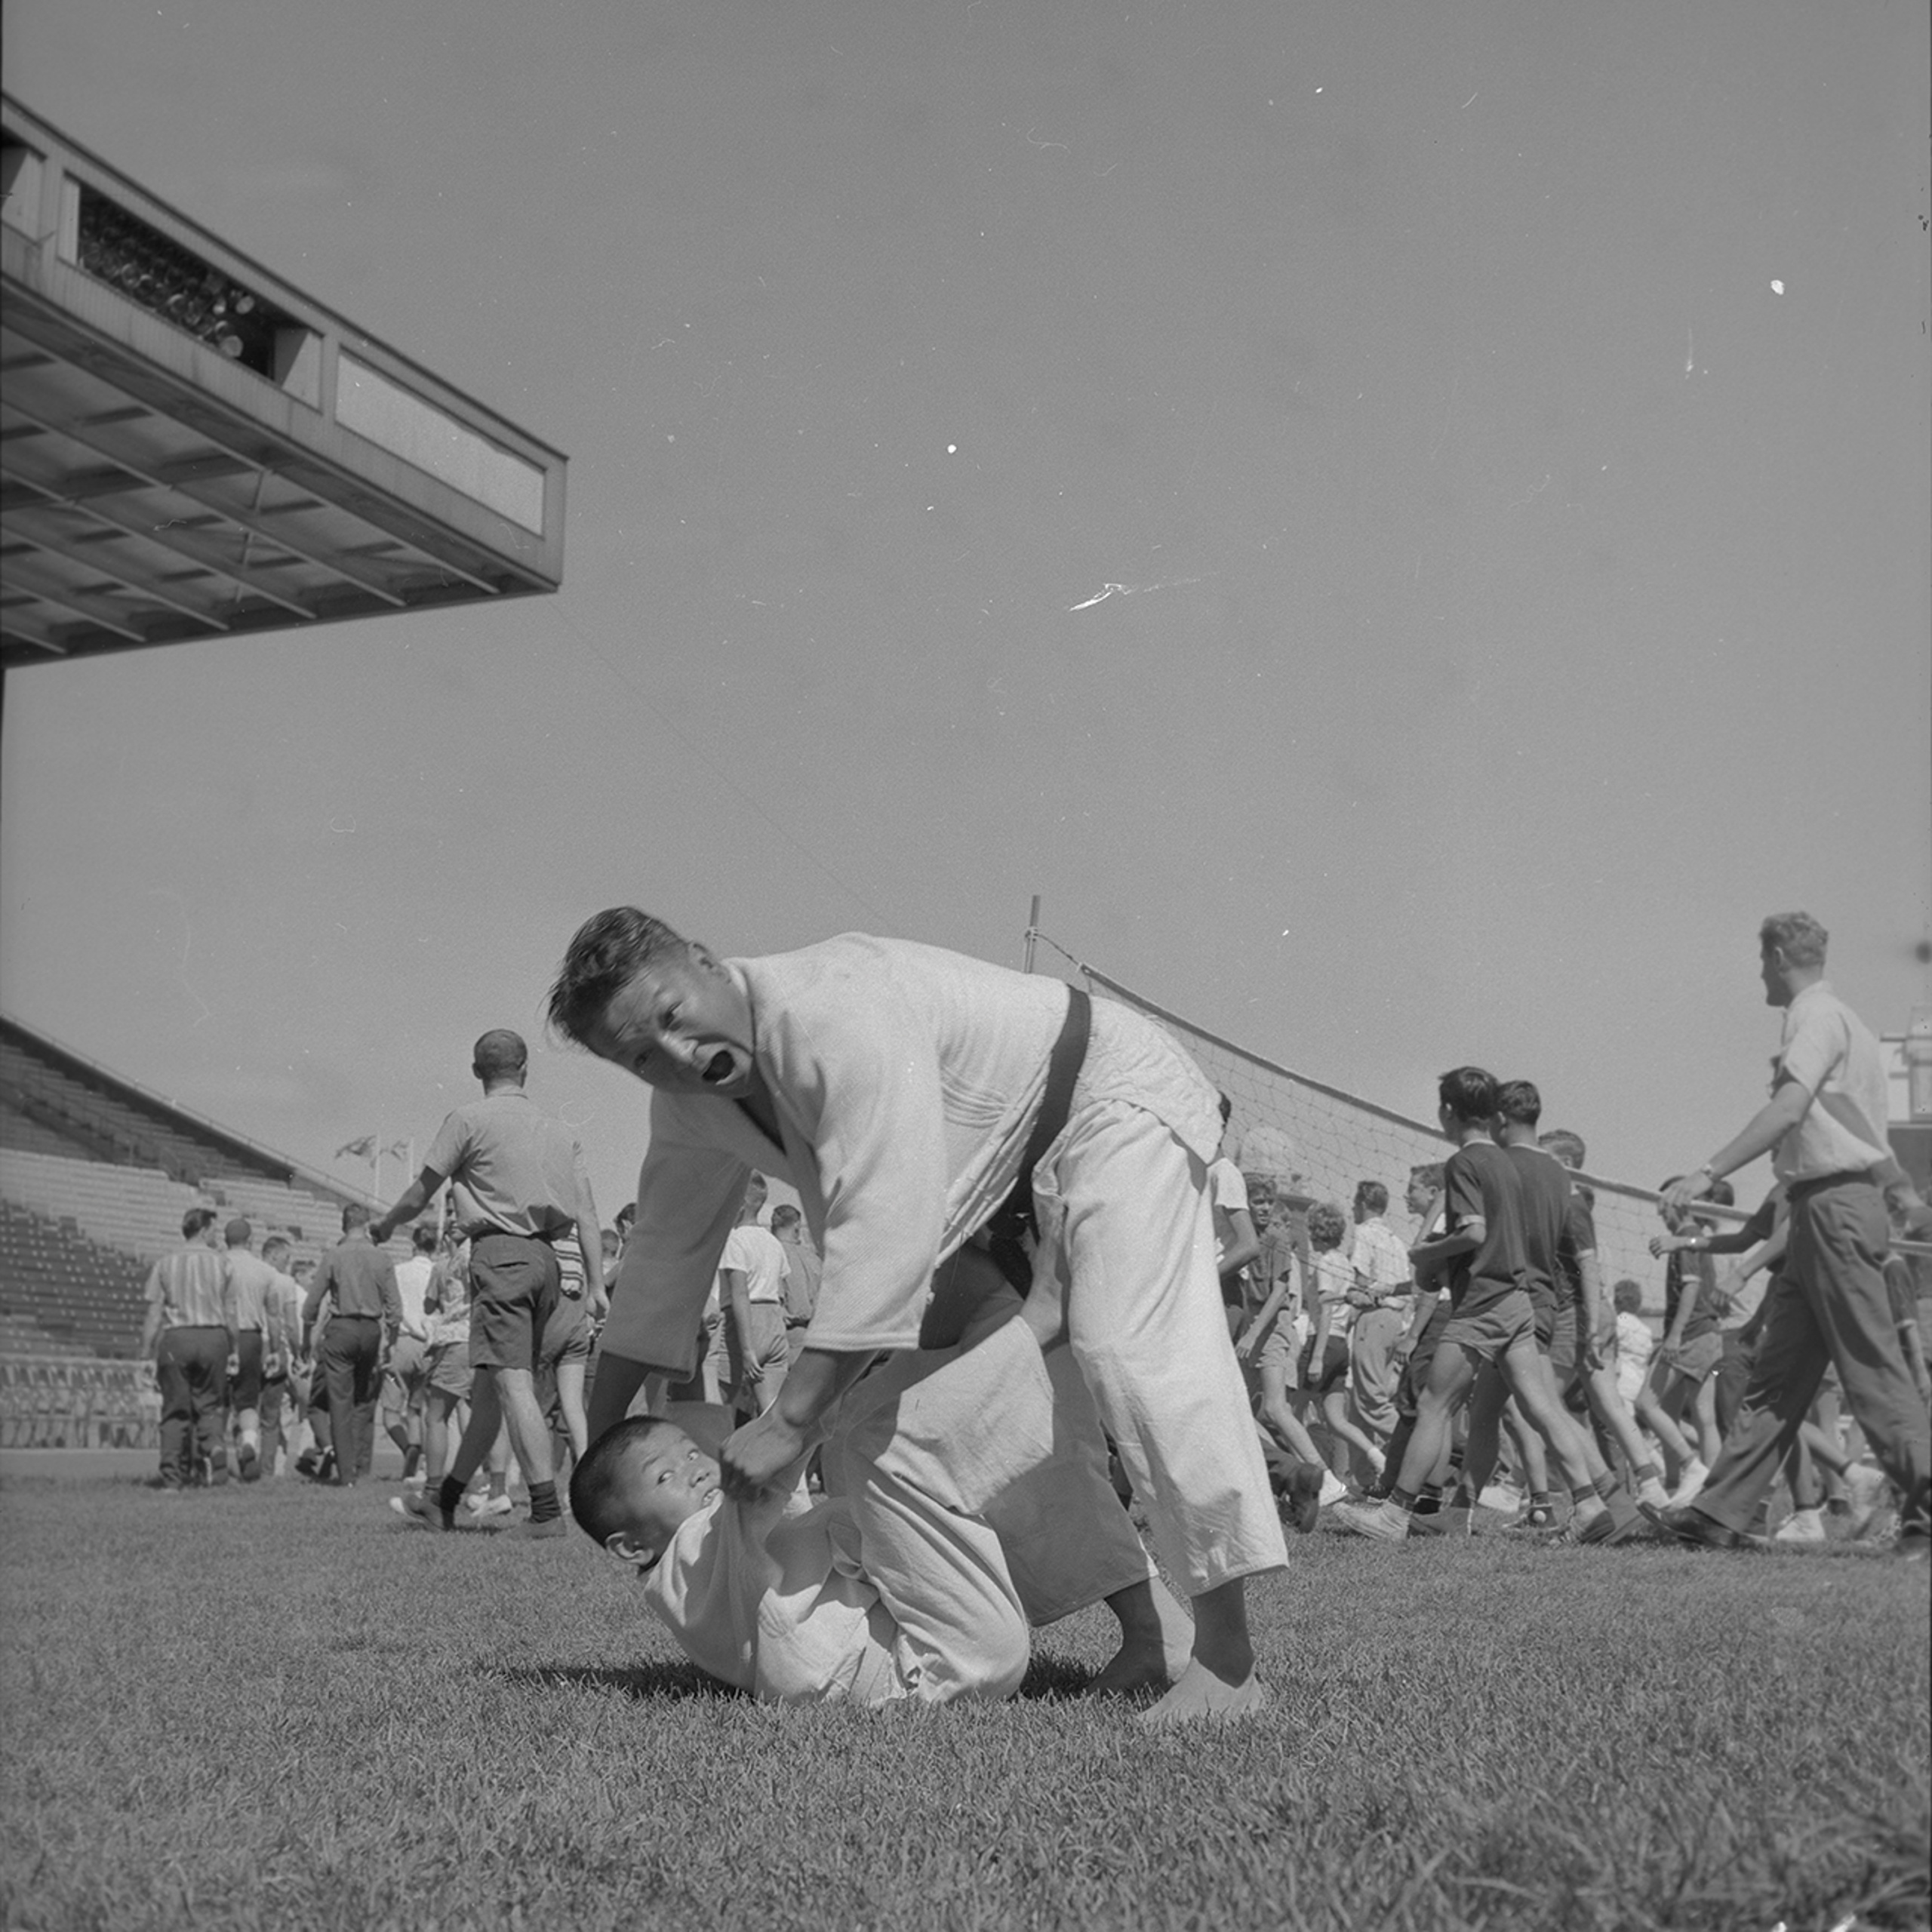 Martial Arts Demonstration at Grandstand, 1962. Canadian National Exhibition Archives, MG5-F771-I16. Courtesy of the CNEA